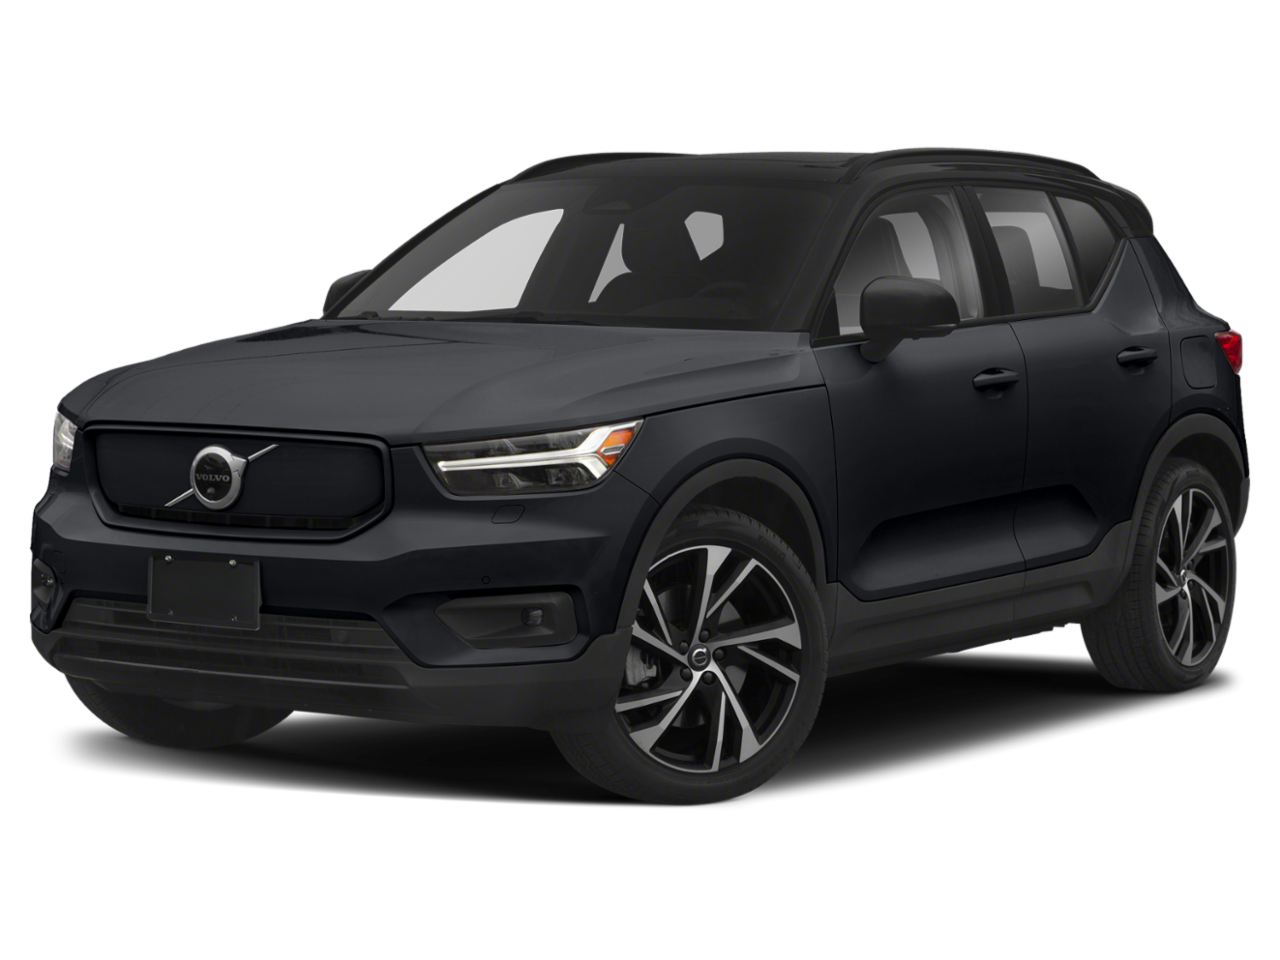 Volvo 2021 XC40 Recharge P8 eAWD Pure Electric